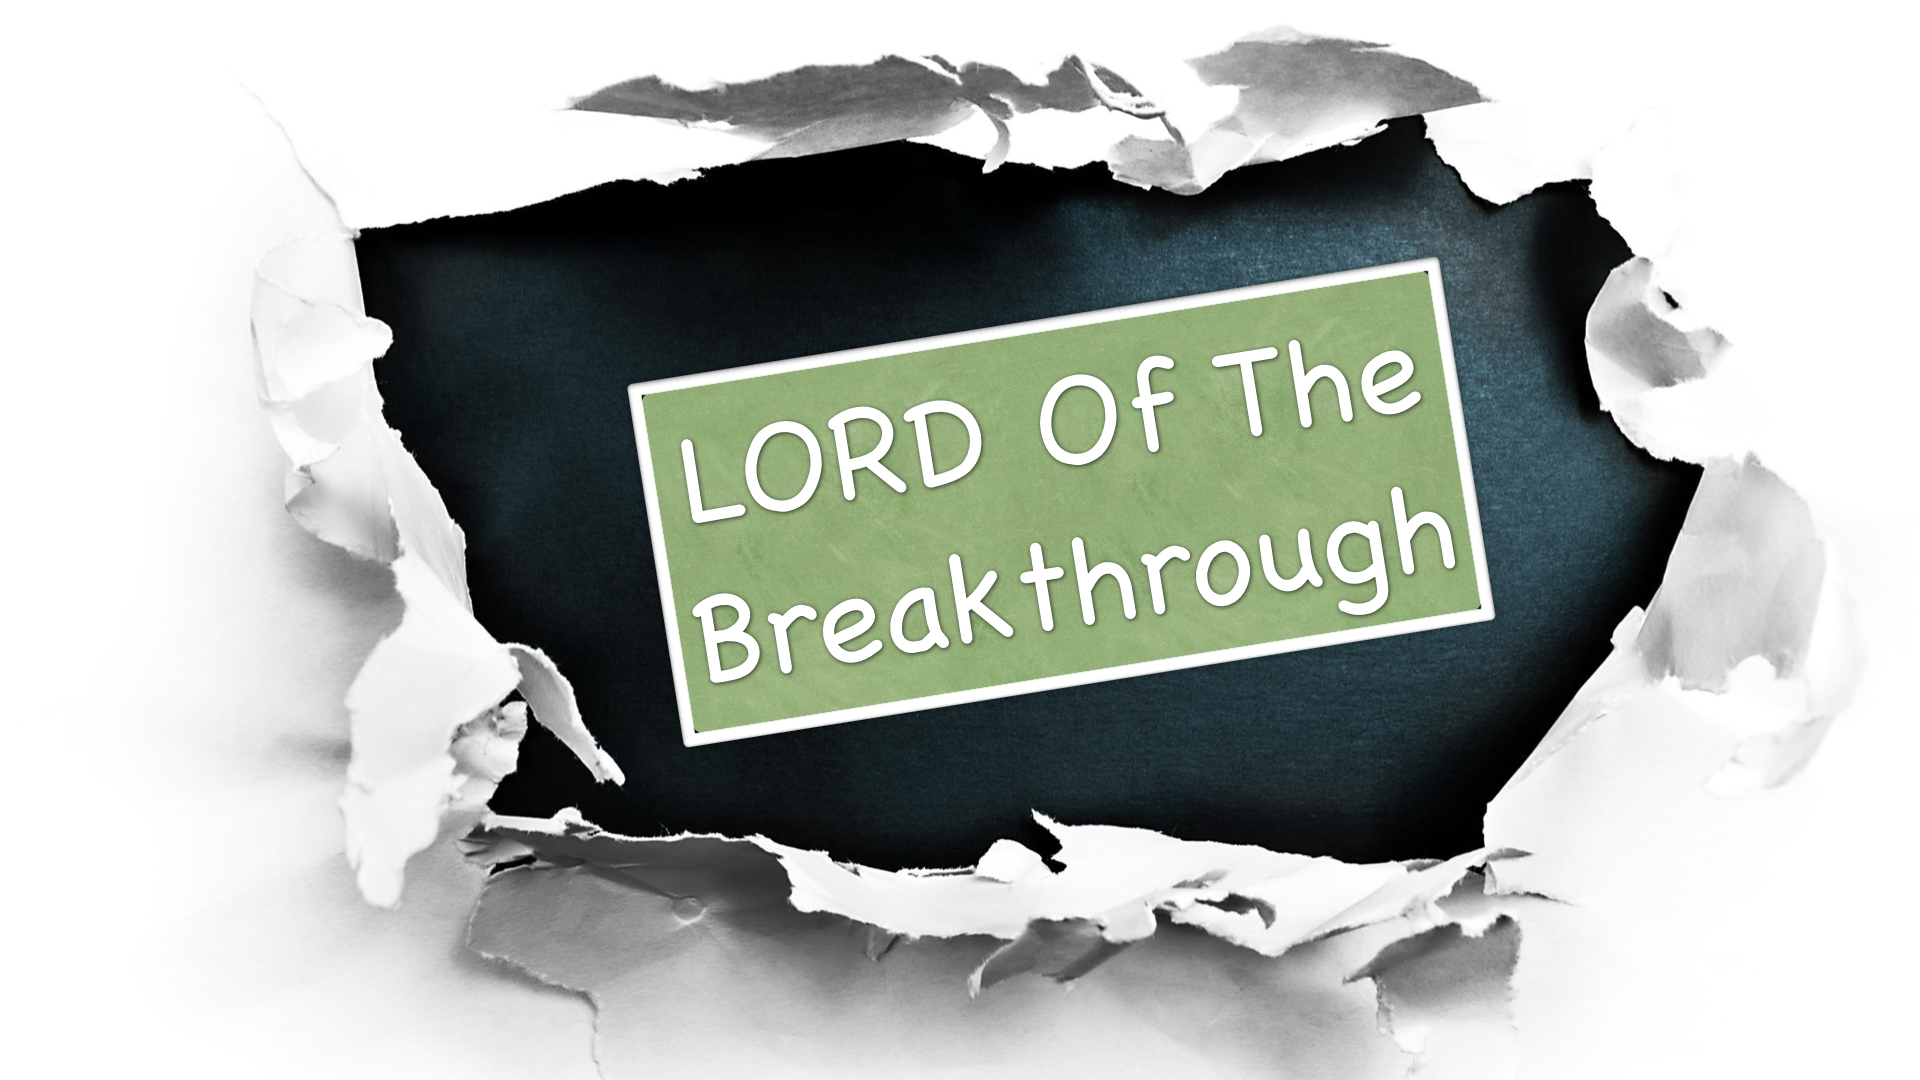 Lord of the Breakthrough 10282018